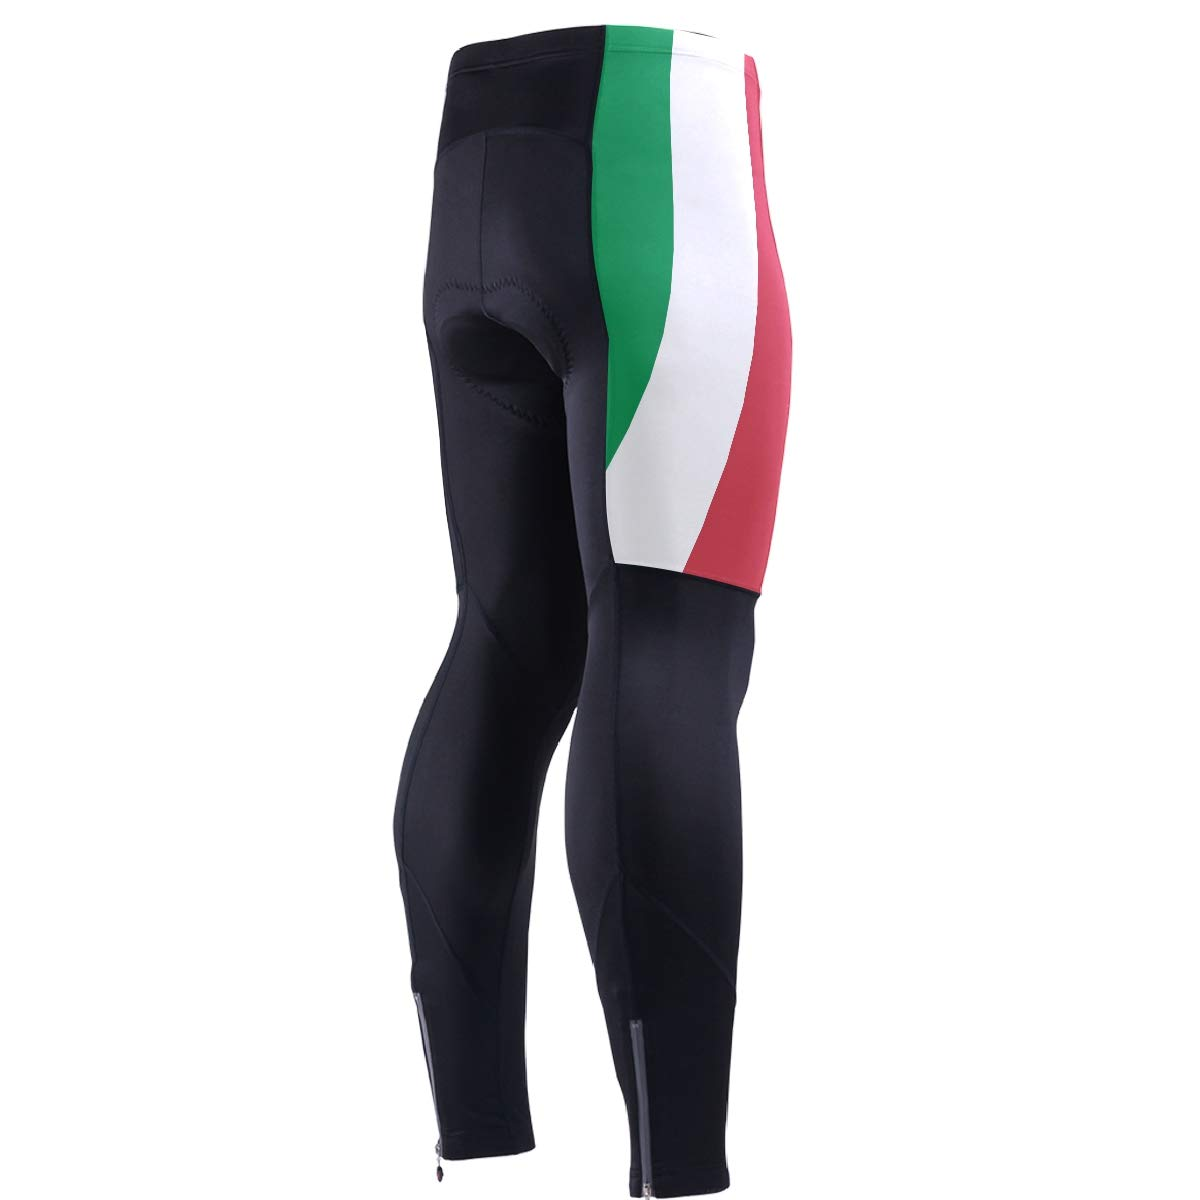 CHINEIN Men's Cycling Jersey Long Sleeve with 3 Rear Pockets Pants Italy Flag